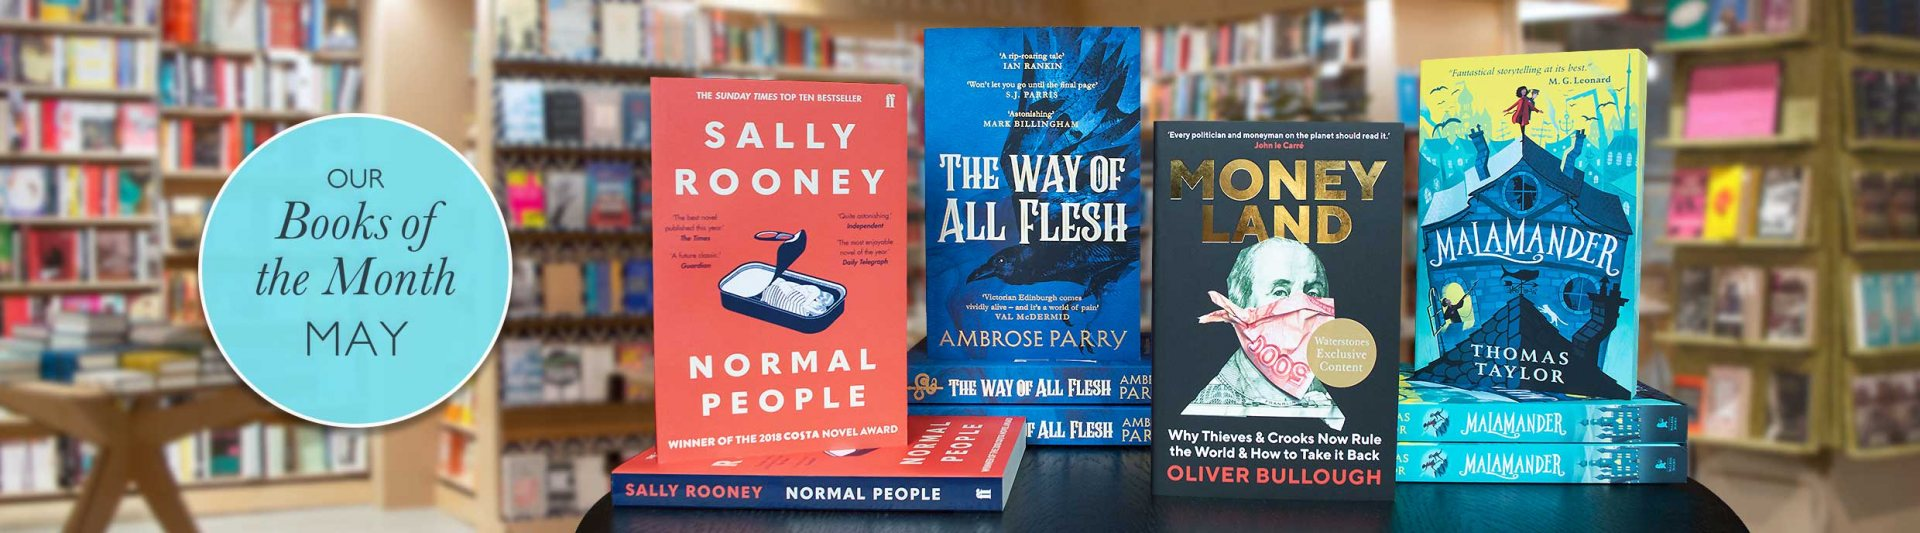 Waterstones Books of the Month 2019 May